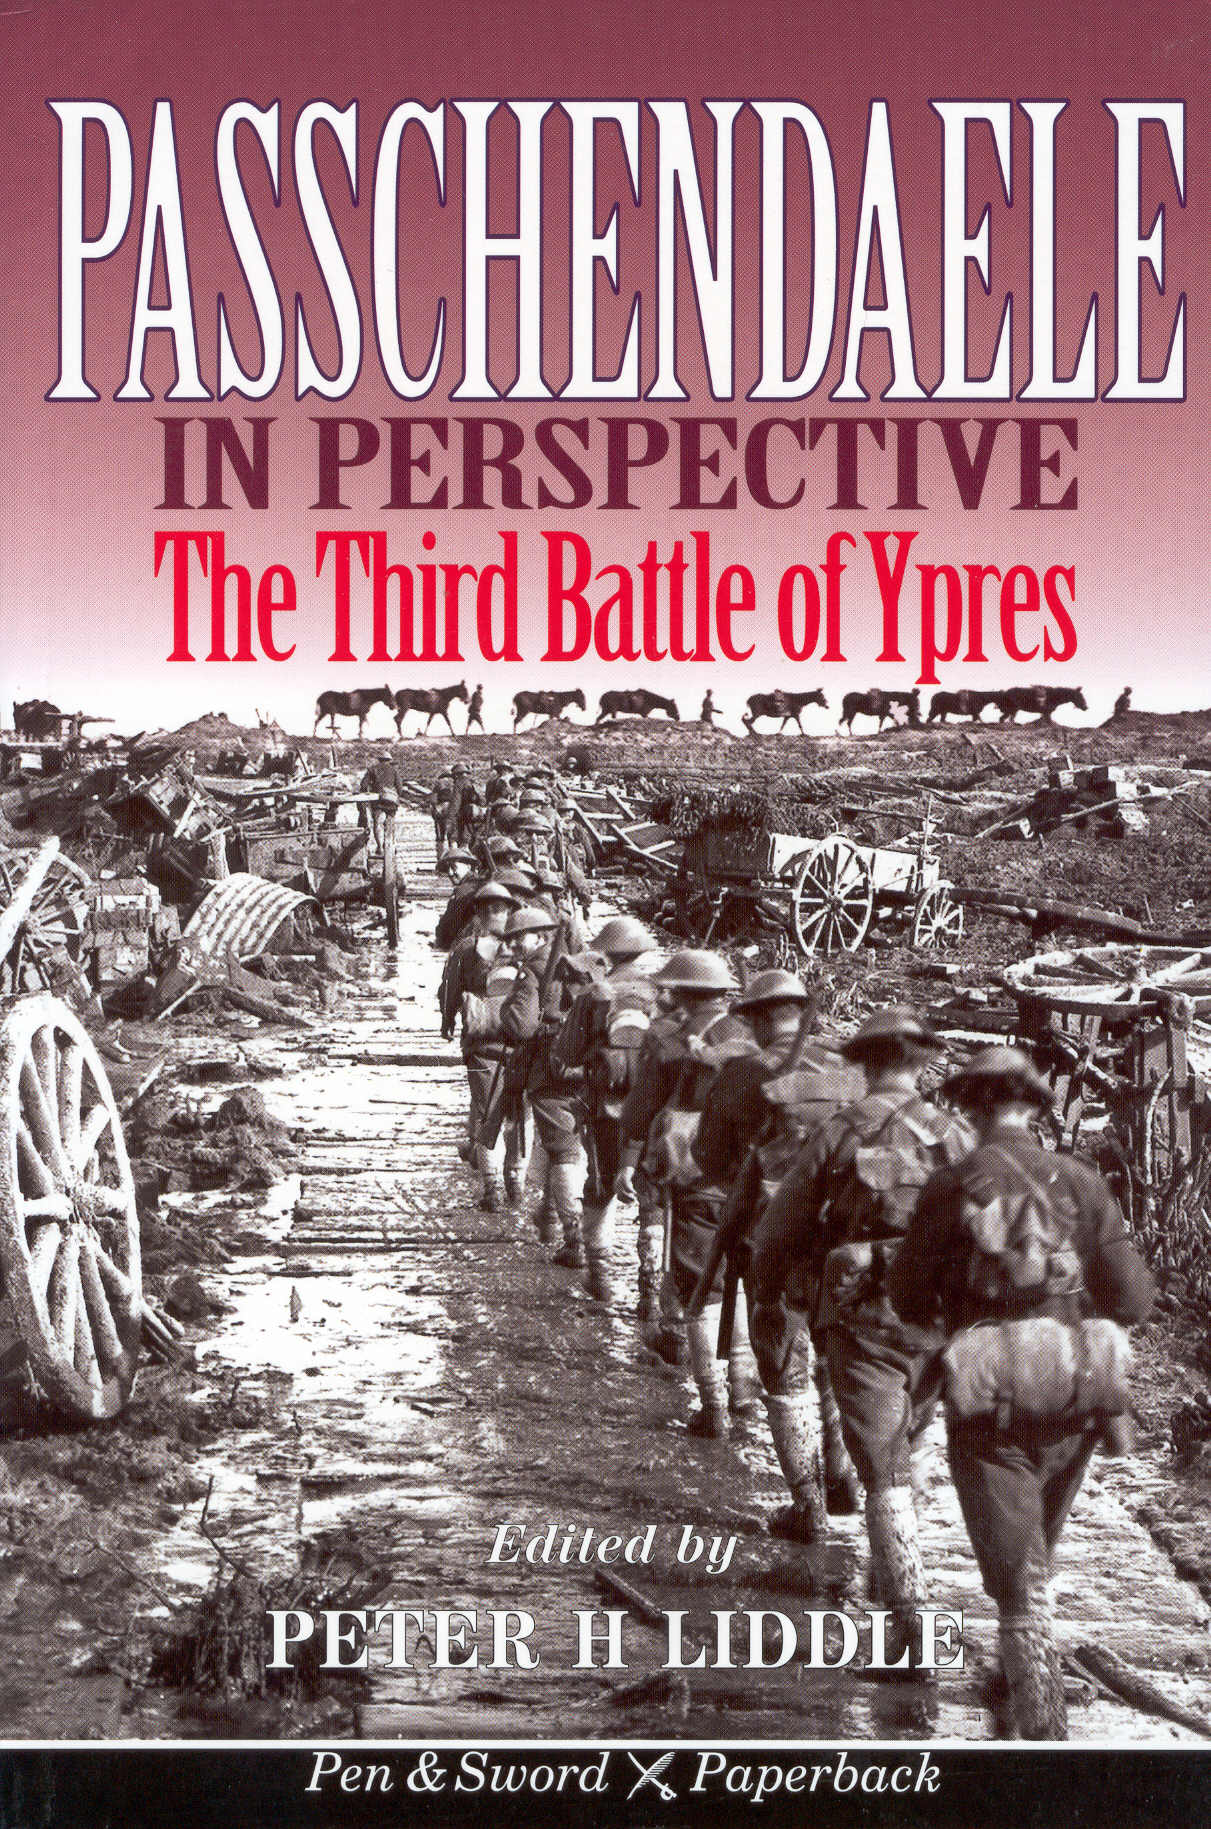 passchendaele essay Free college essay the battle of passchendaele the battle of passchendaele the battle of passchendaele is remembered for its atrocious conditions, high casualty rates and canadian valor.